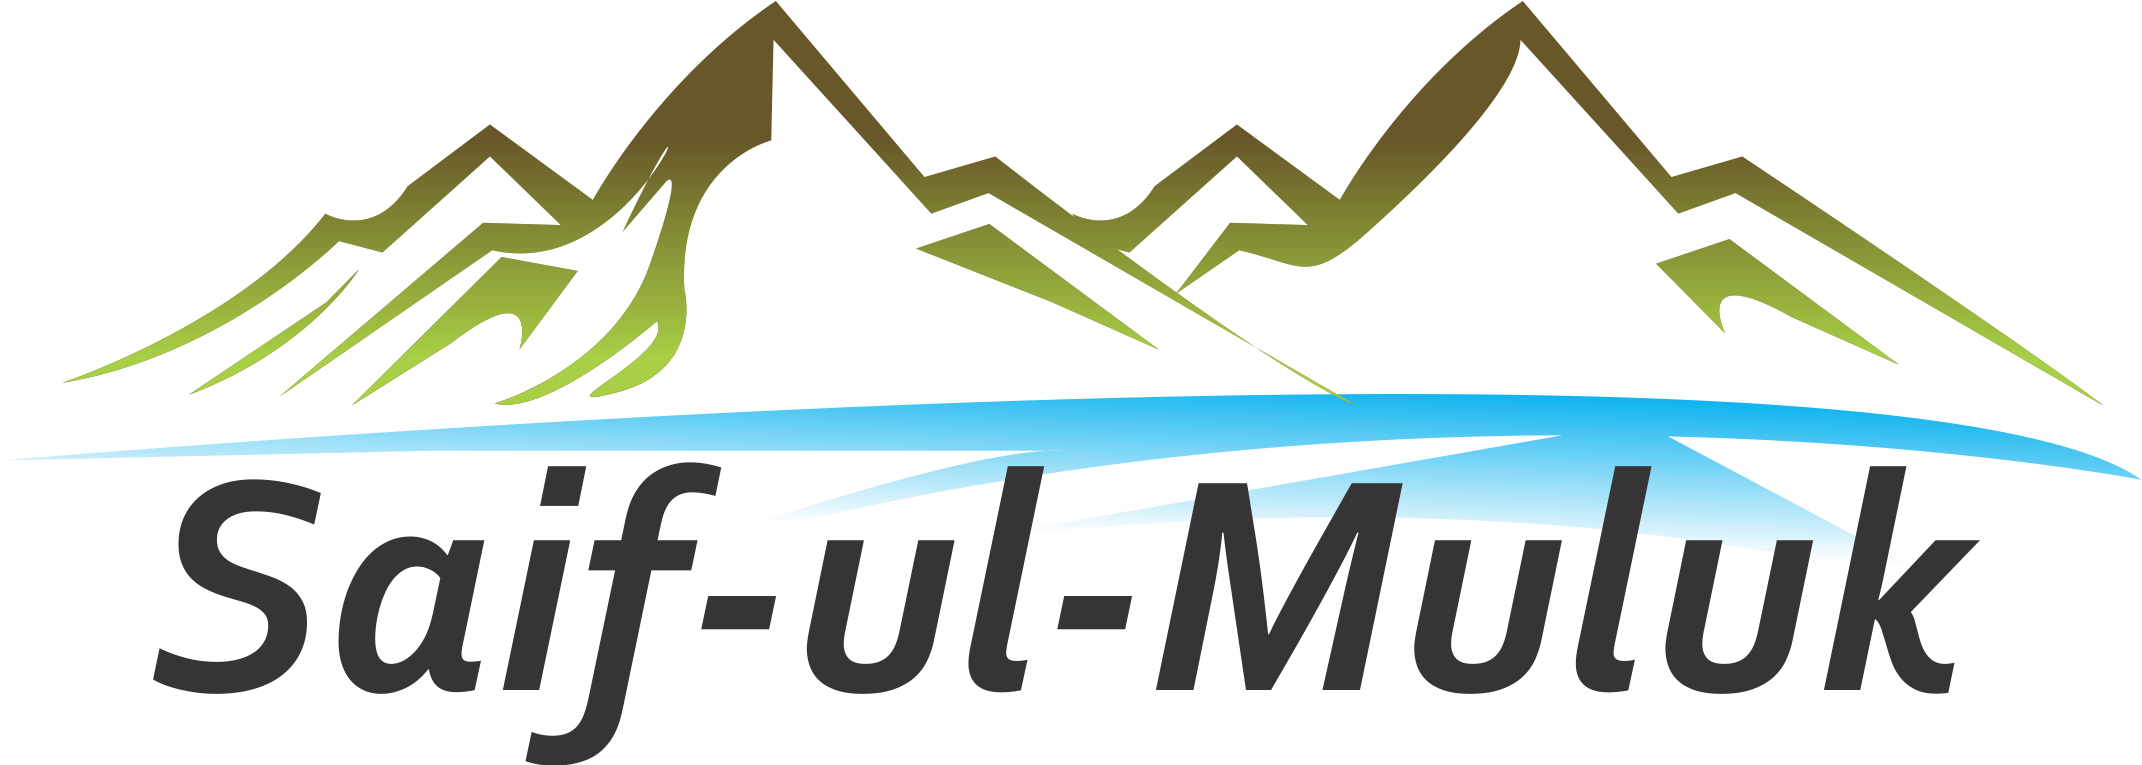 Saif ul Muluk Tour and Travel Company | Saif-Ul-Muluk | No -1 Kaghan Naran Valley Tours and Travel Company, saifulmuluk.com providing best tourism services in Pakistan.